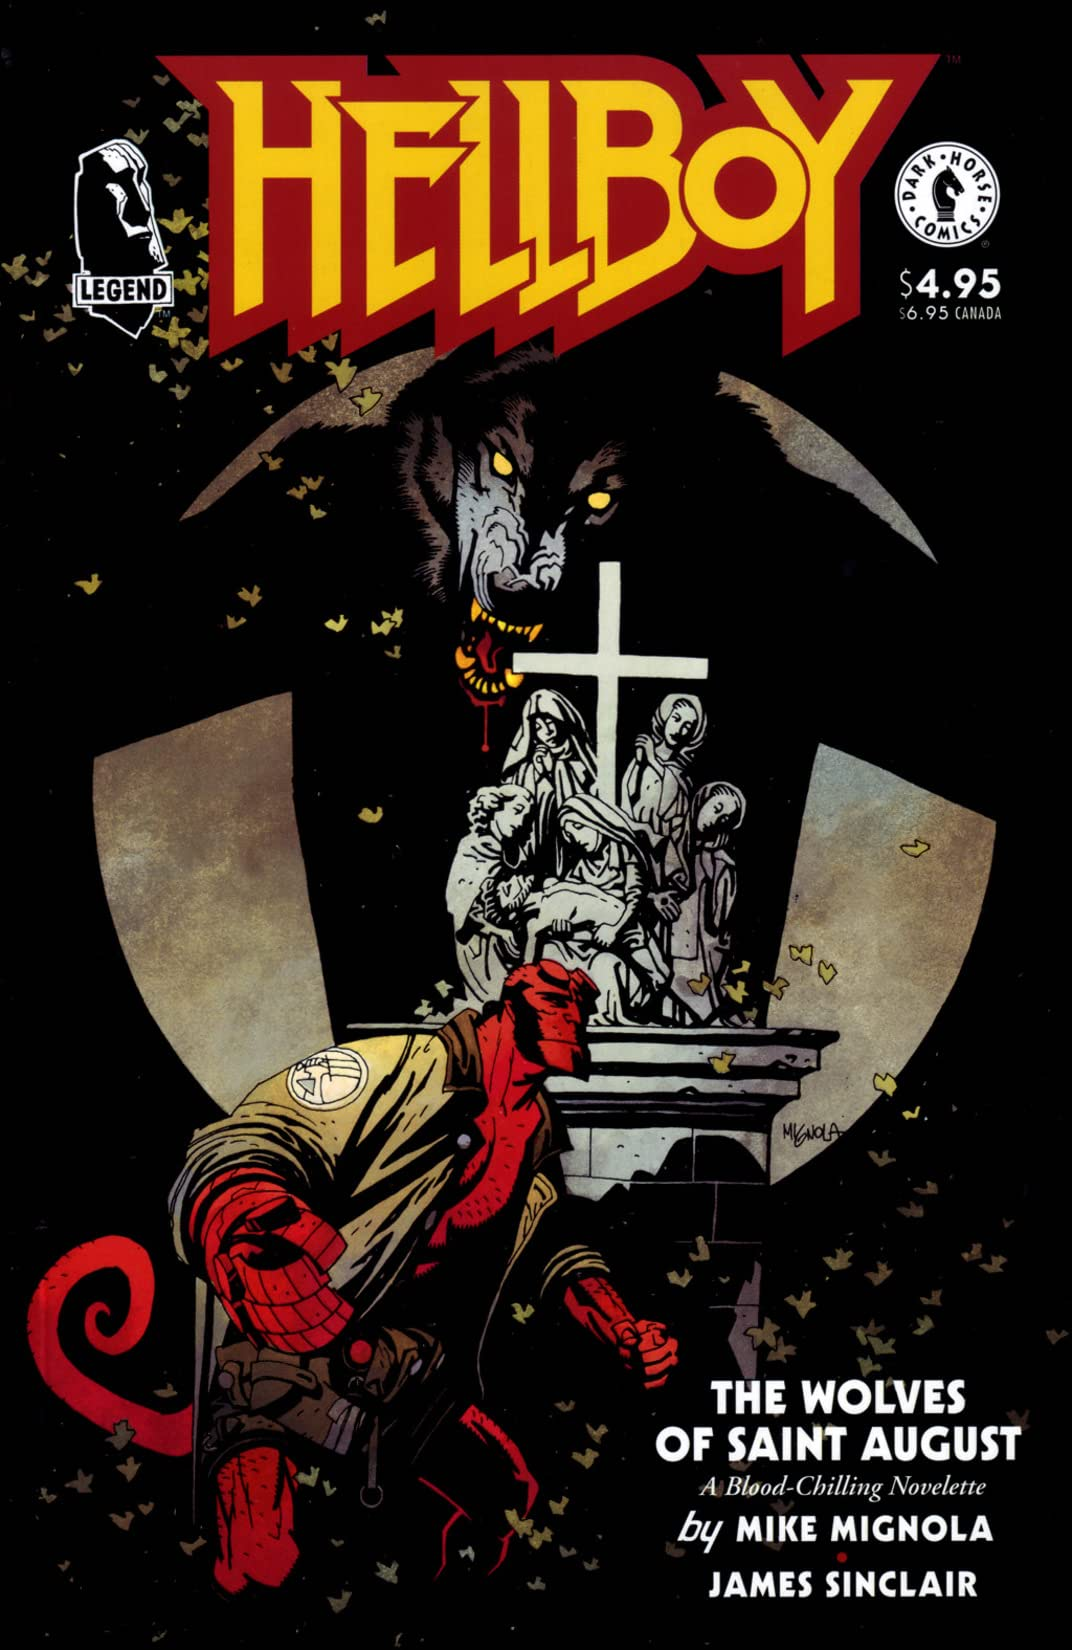 Hellboy: The Wolves of Saint August